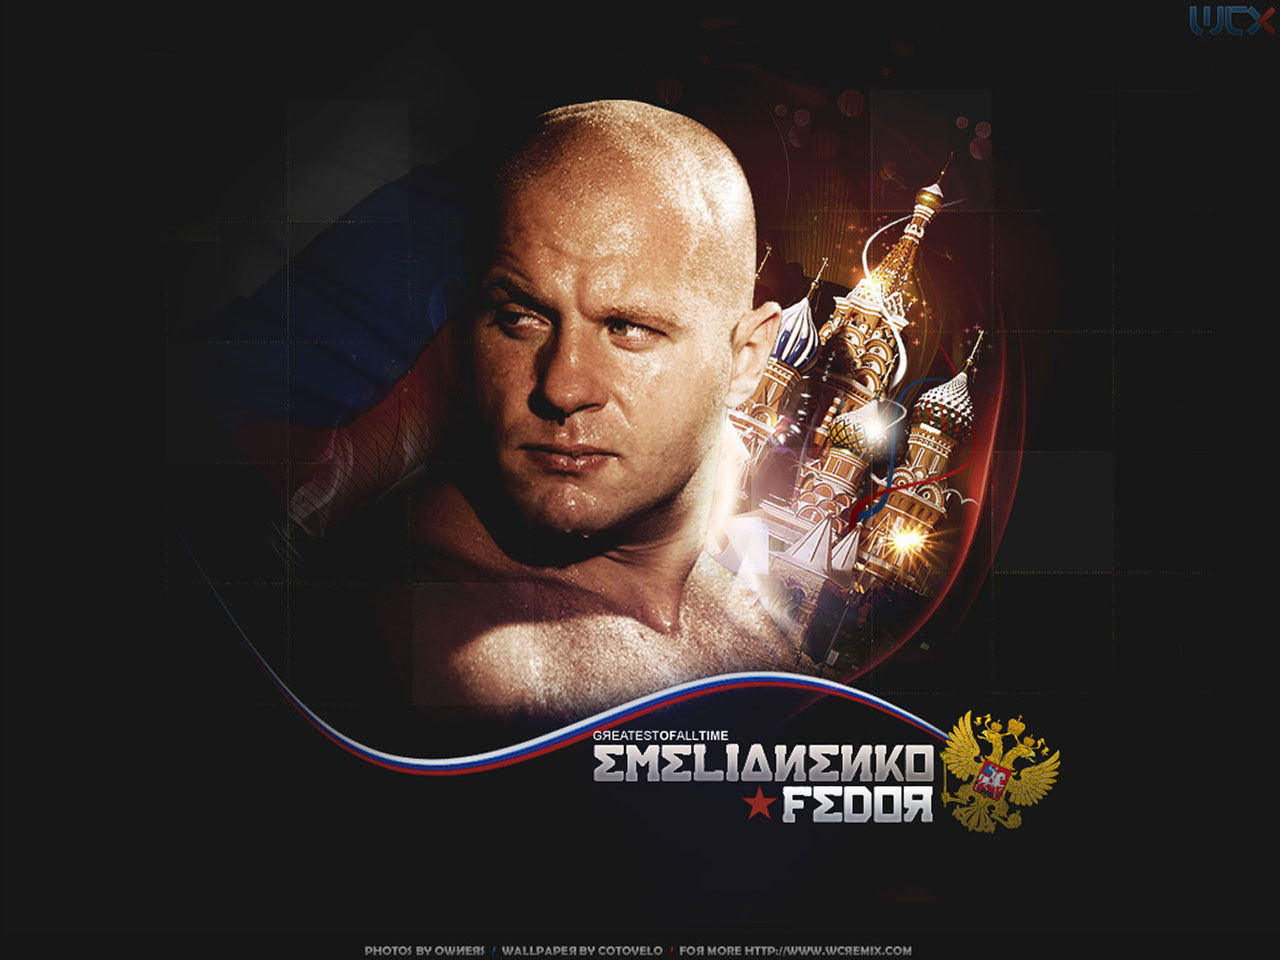 ¿Fedor Emelianenko vs. Matt Mitrione en 2017? 14